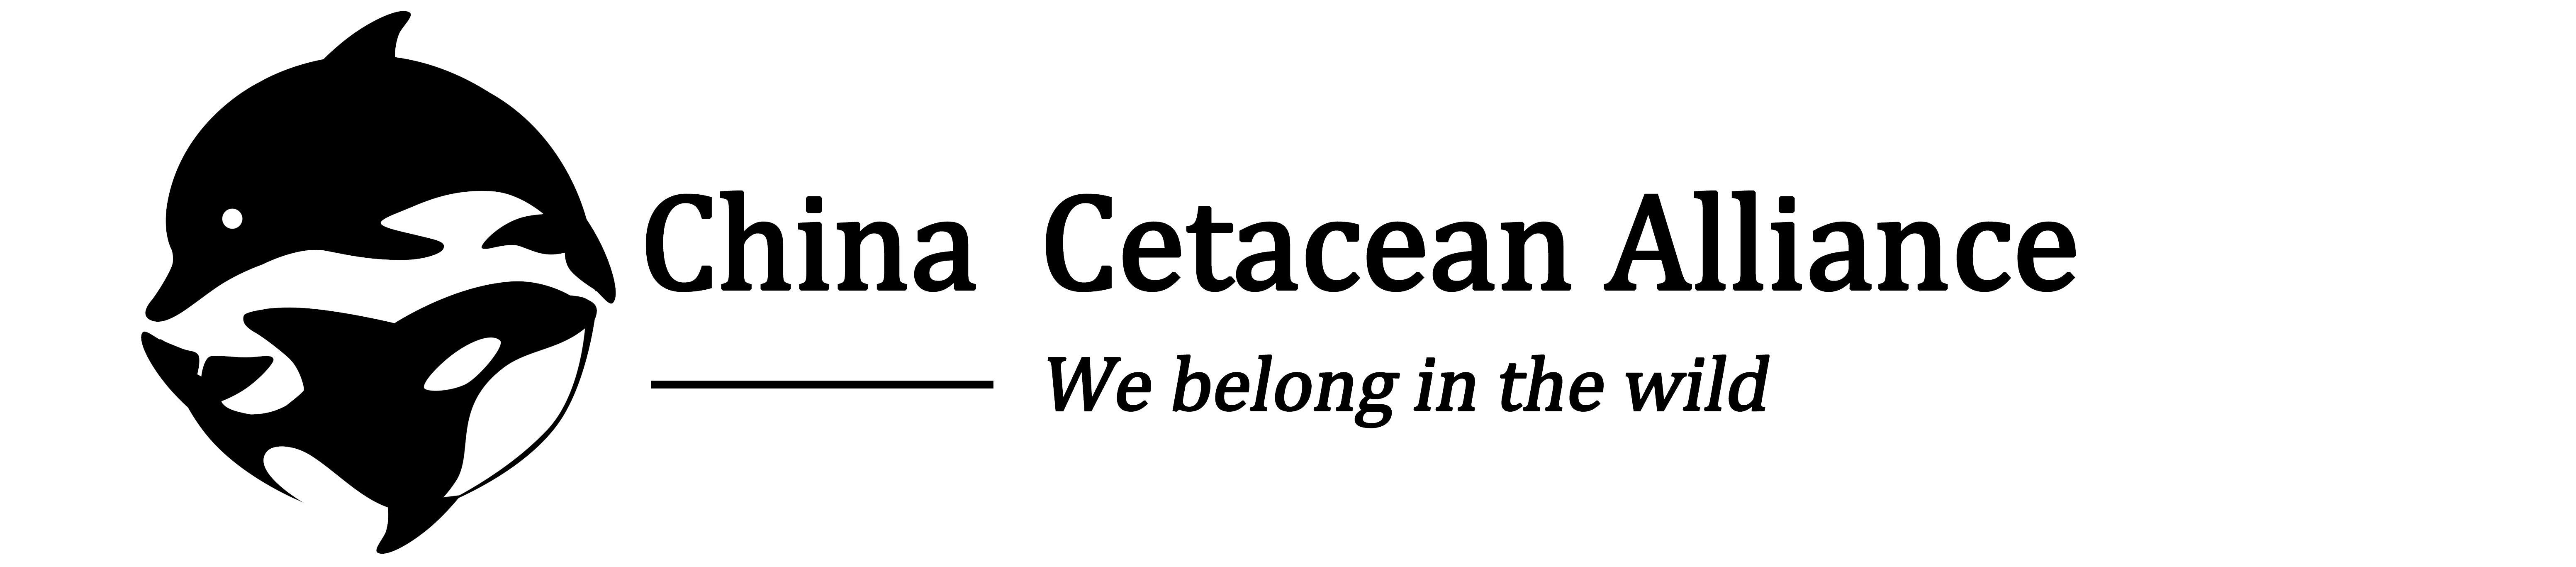 China Cetacean Alliance